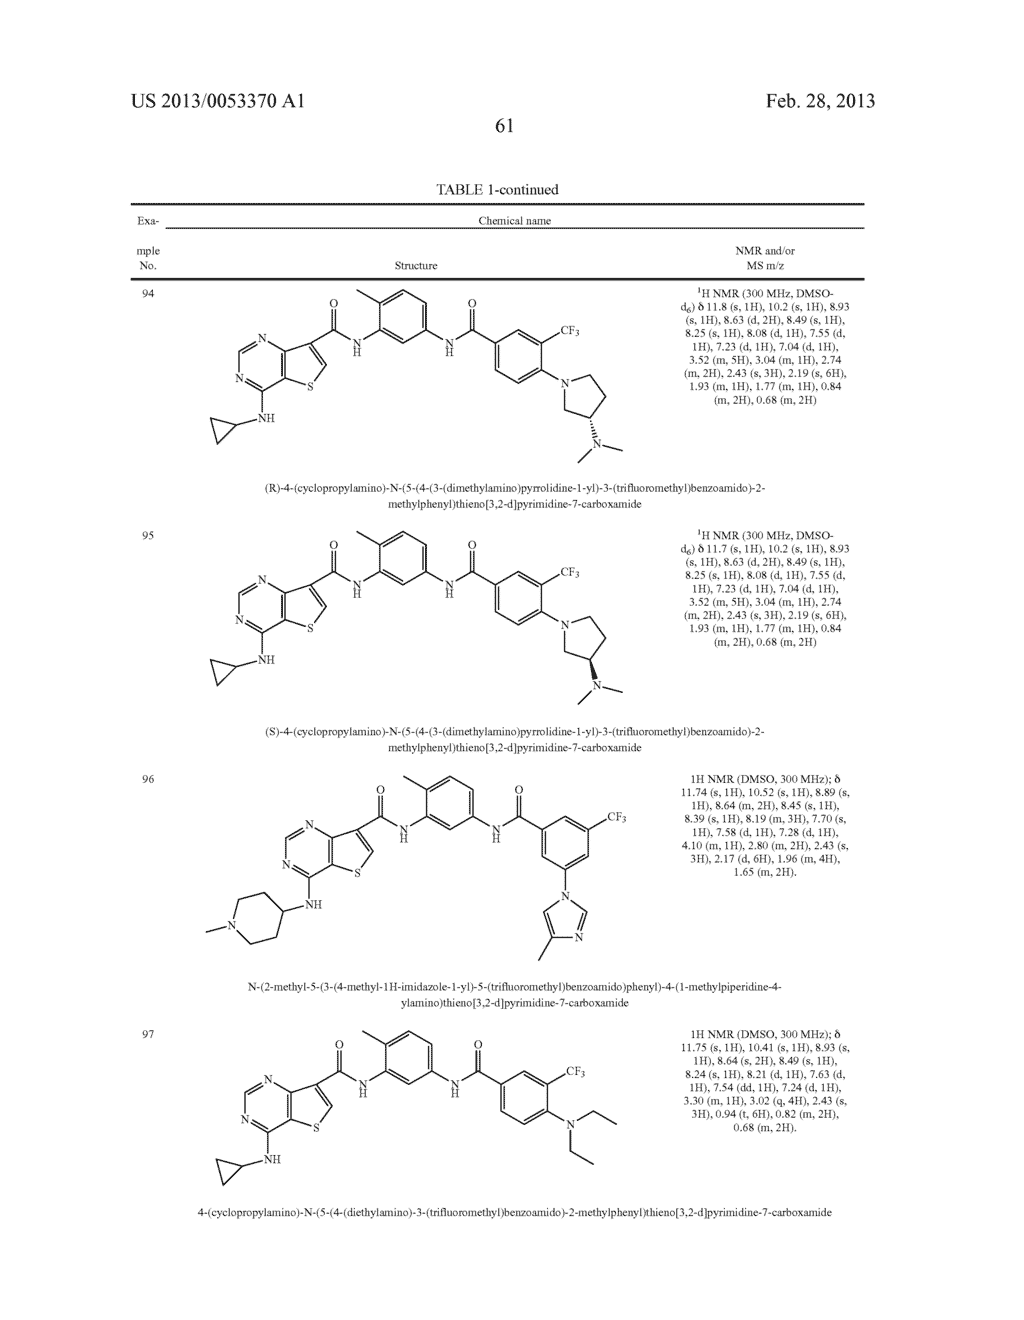 THIENO[3,2-d]PYRIMIDINE DERIVATIVES HAVING INHIBITORY ACTIVITY ON PROTEIN     KINASES - diagram, schematic, and image 62